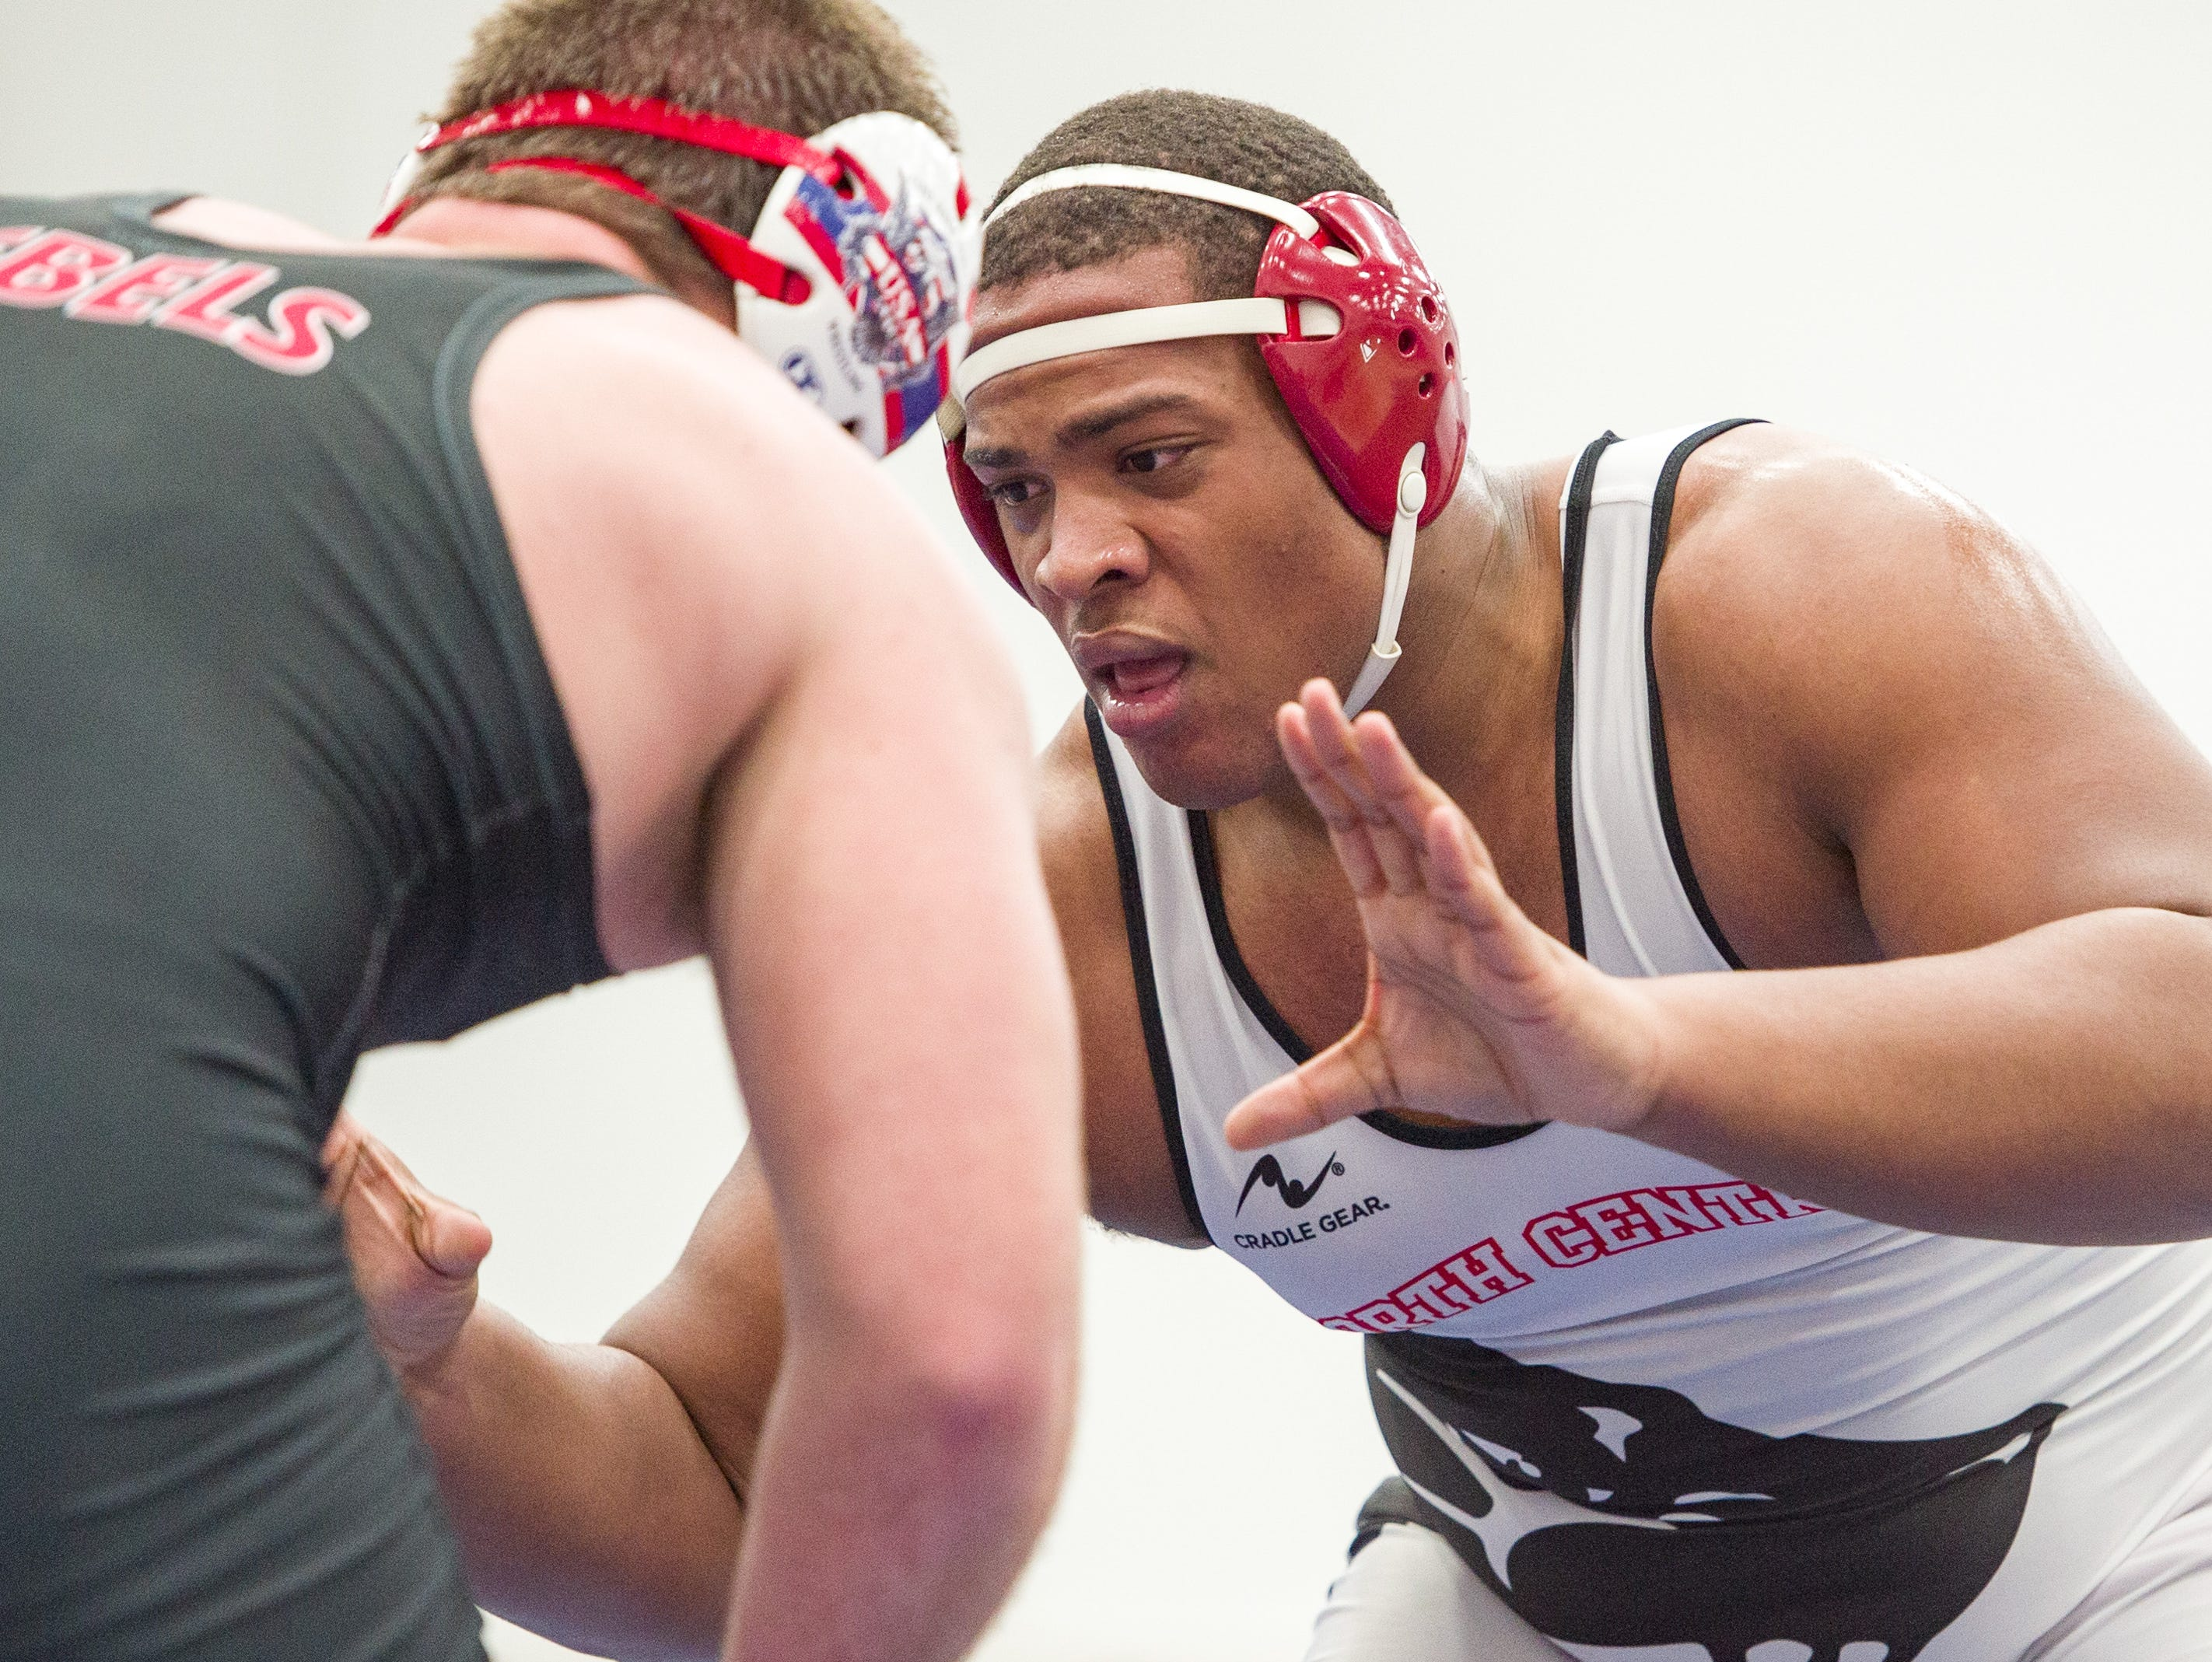 North Central High School wrestler Jamichael Watts, right, wrestles with Roncalli High School's John Harris in the 285-pound weight class. Franklin Central High School hosted the Marion County wrestling championships, Saturday, Dec. 15, 2018.